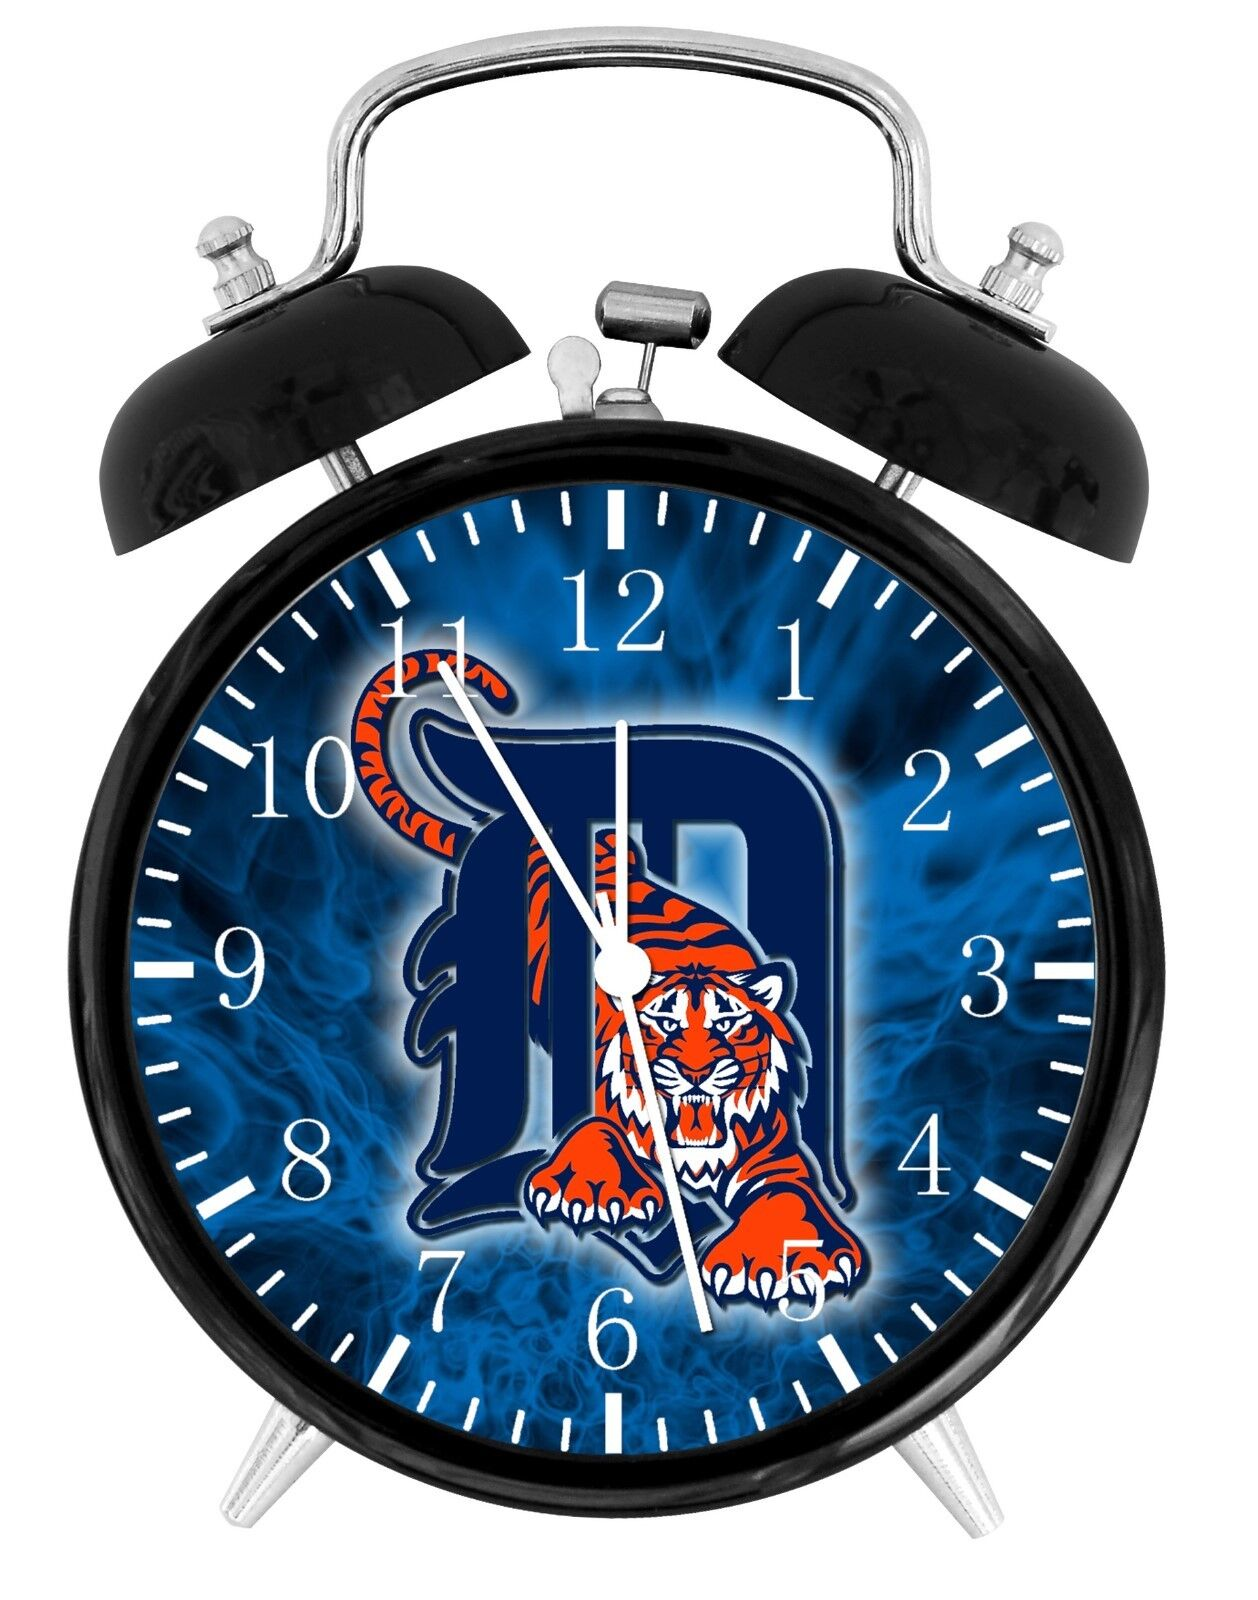 Detroit Tigers Alarm Desk Clock Home or Office Decor F94 Nice Gift